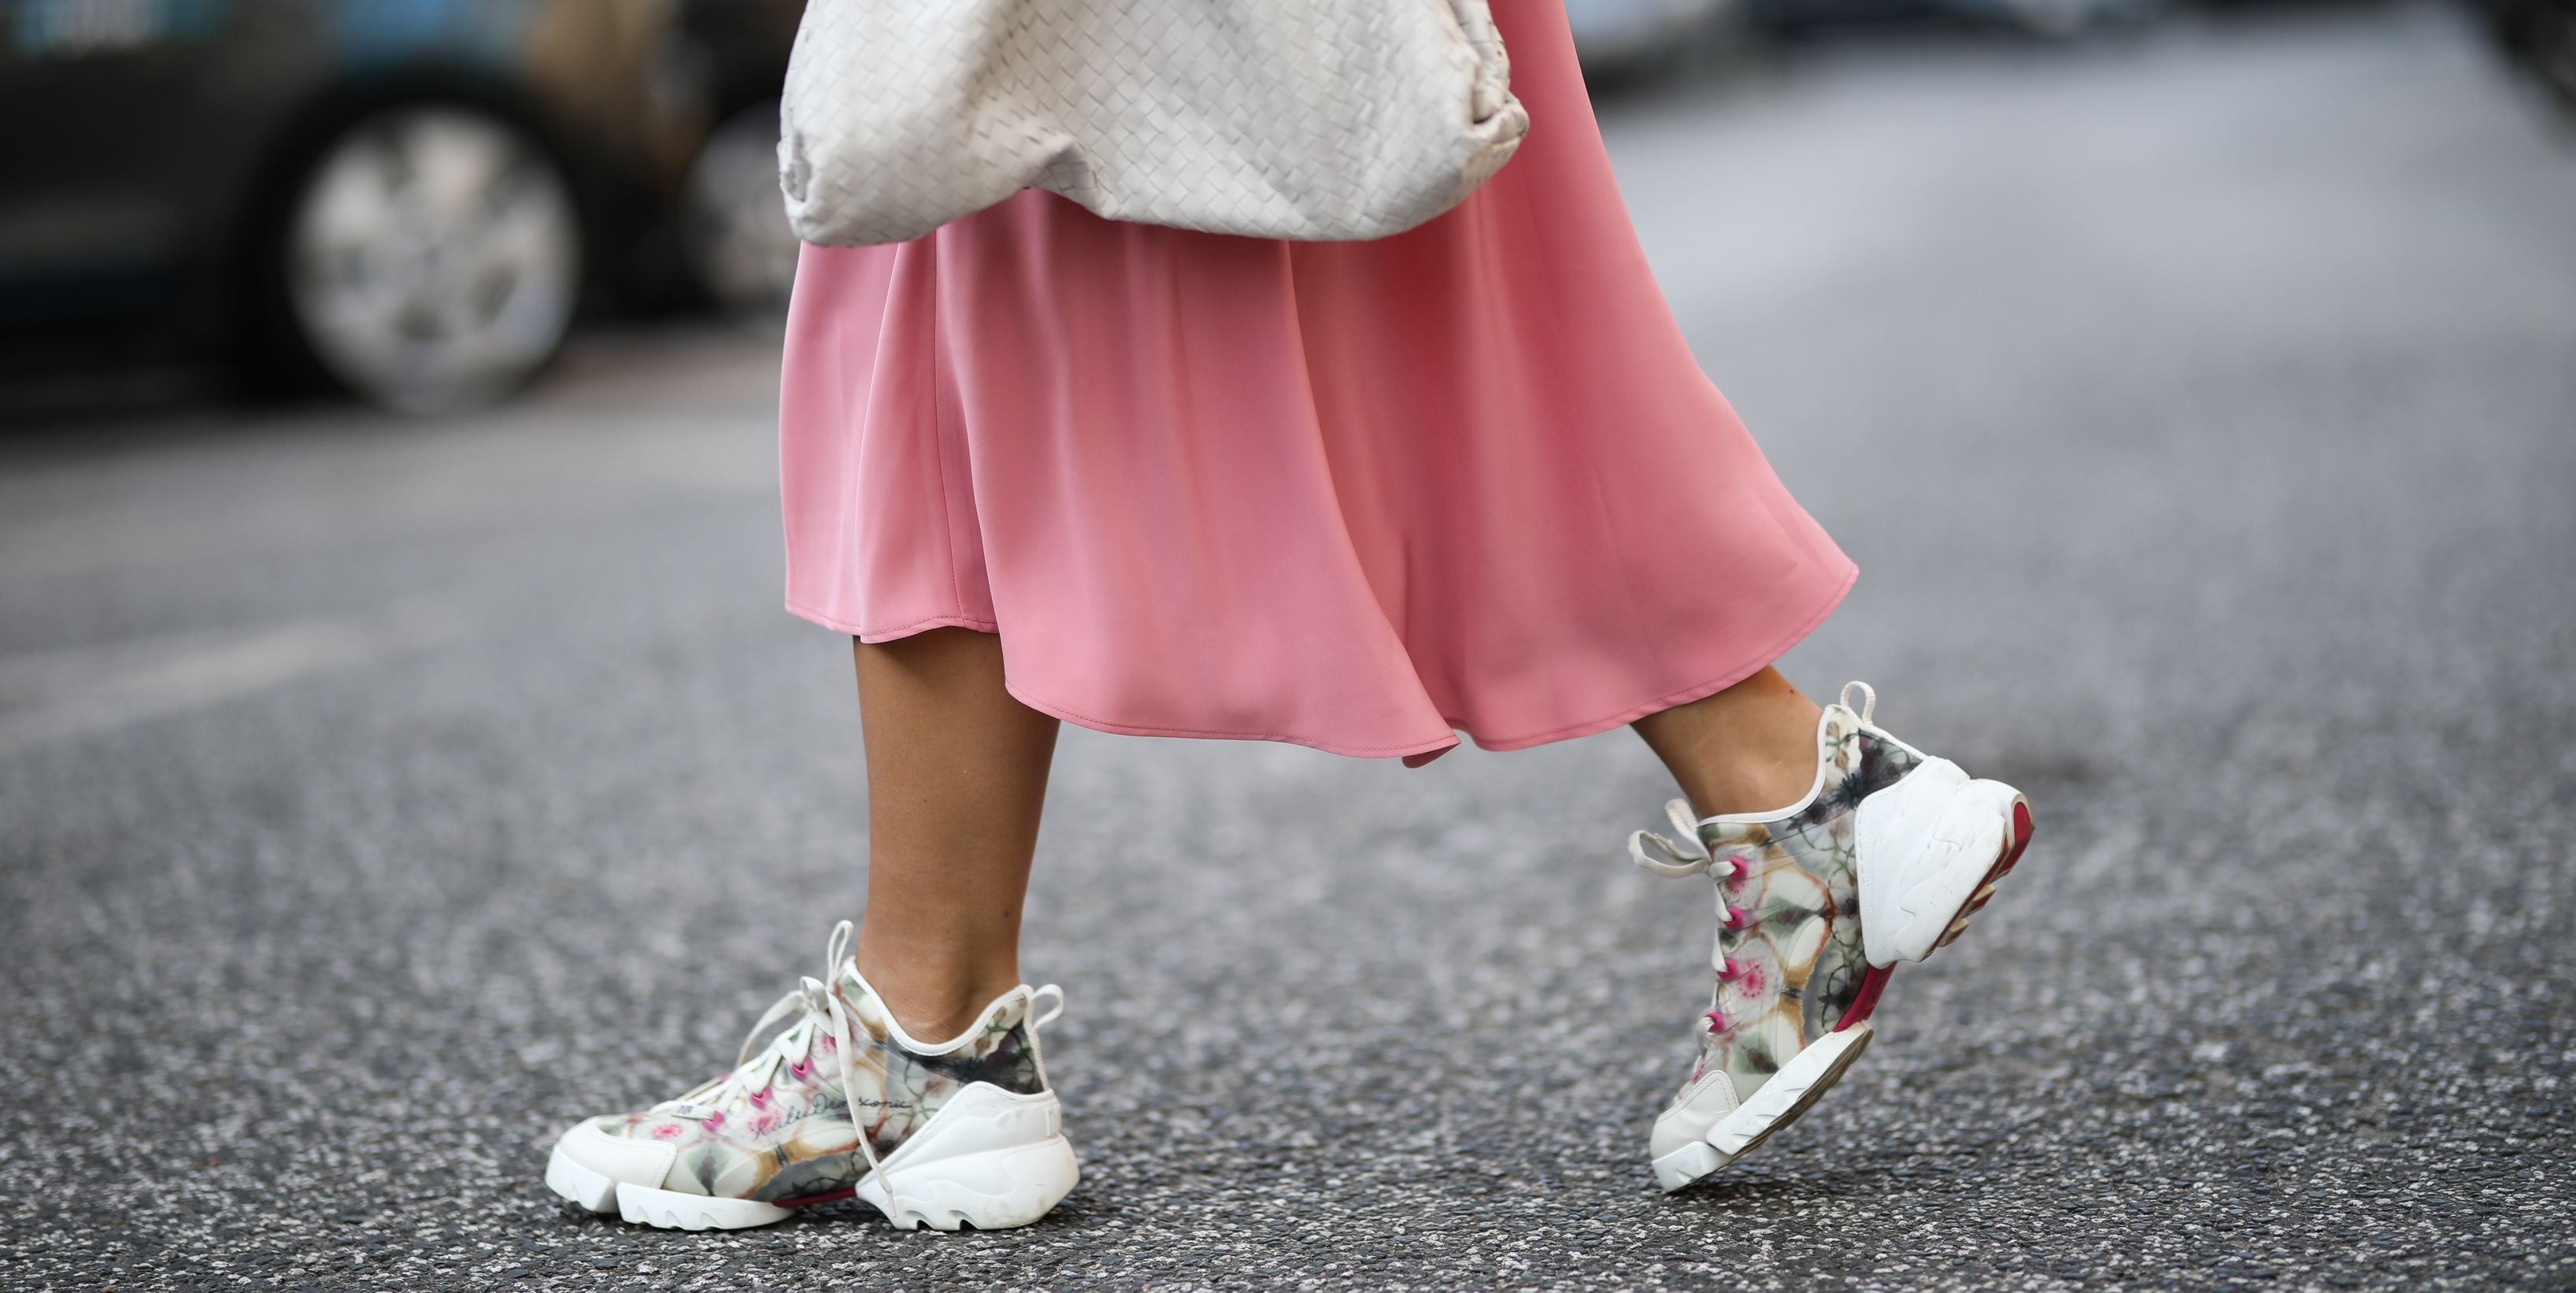 The 16 Hottest Sneakers to Buy Right Now, According to Your Favorite Influencers